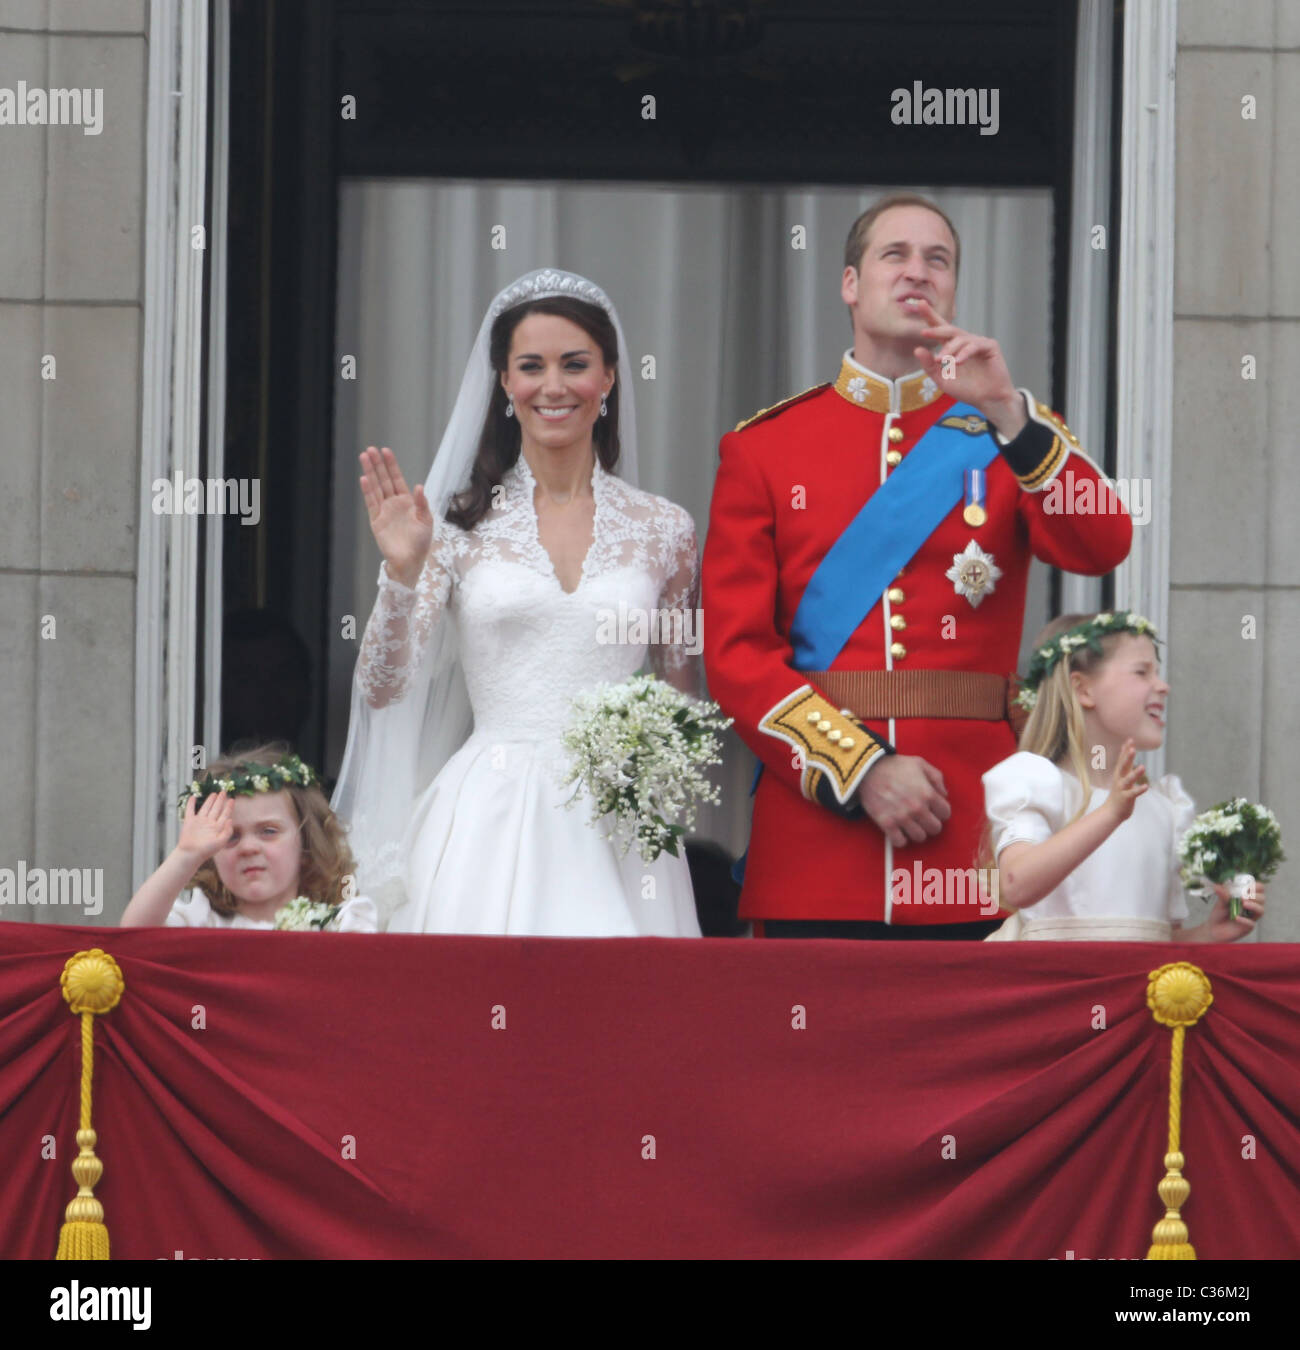 The Wedding of Prince William and Catherine Middleton. 29th April 2011. The newly married couple wave to crowds - Stock Image